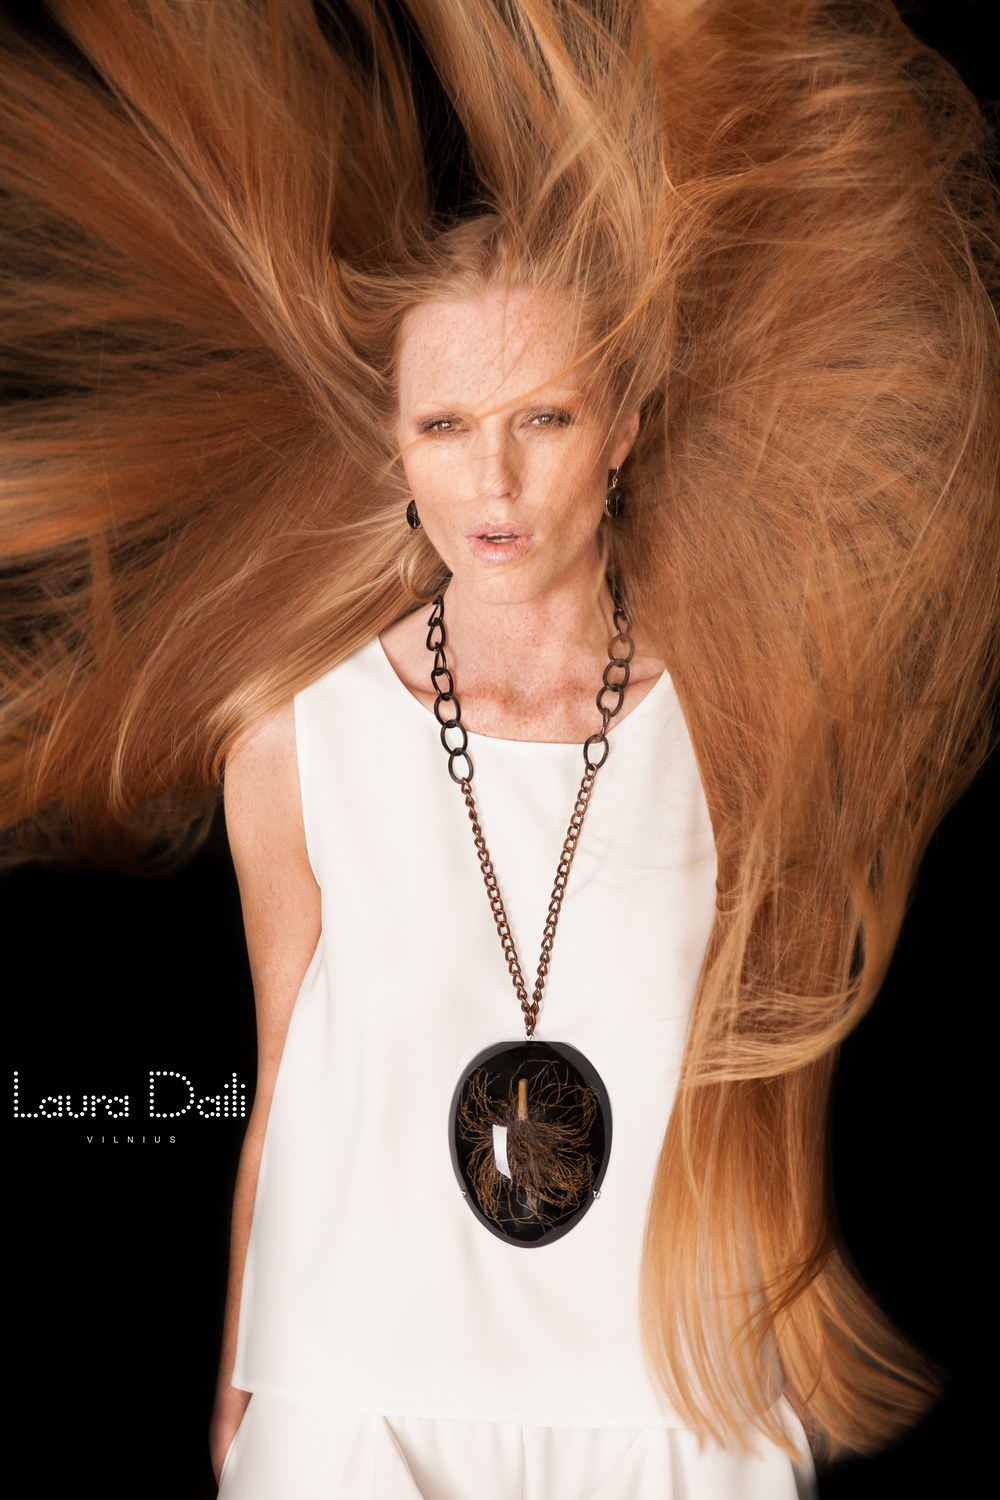 Laura Daili 'Blossom' jewelry, model Rasa Ciune, foto Dalia M Photography (5)